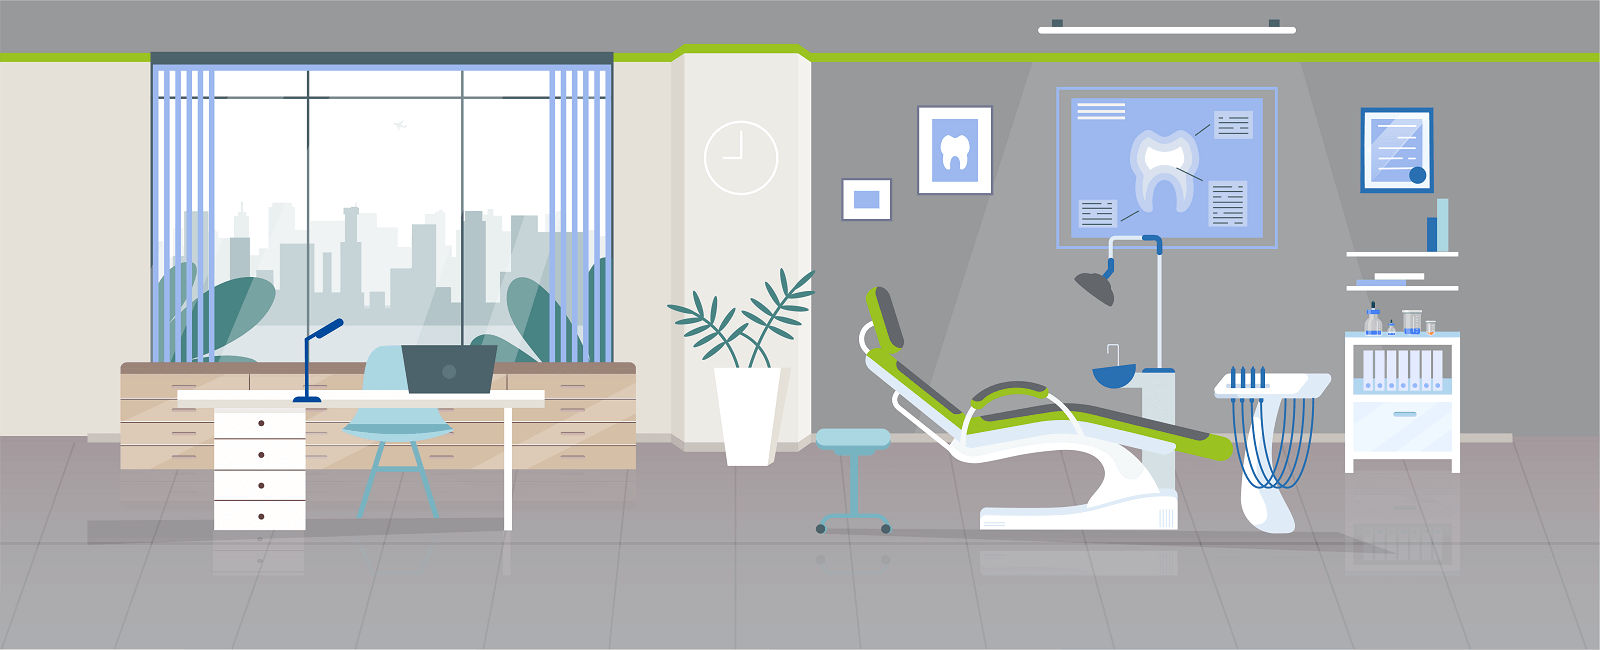 Dental-clinic-in-science-city